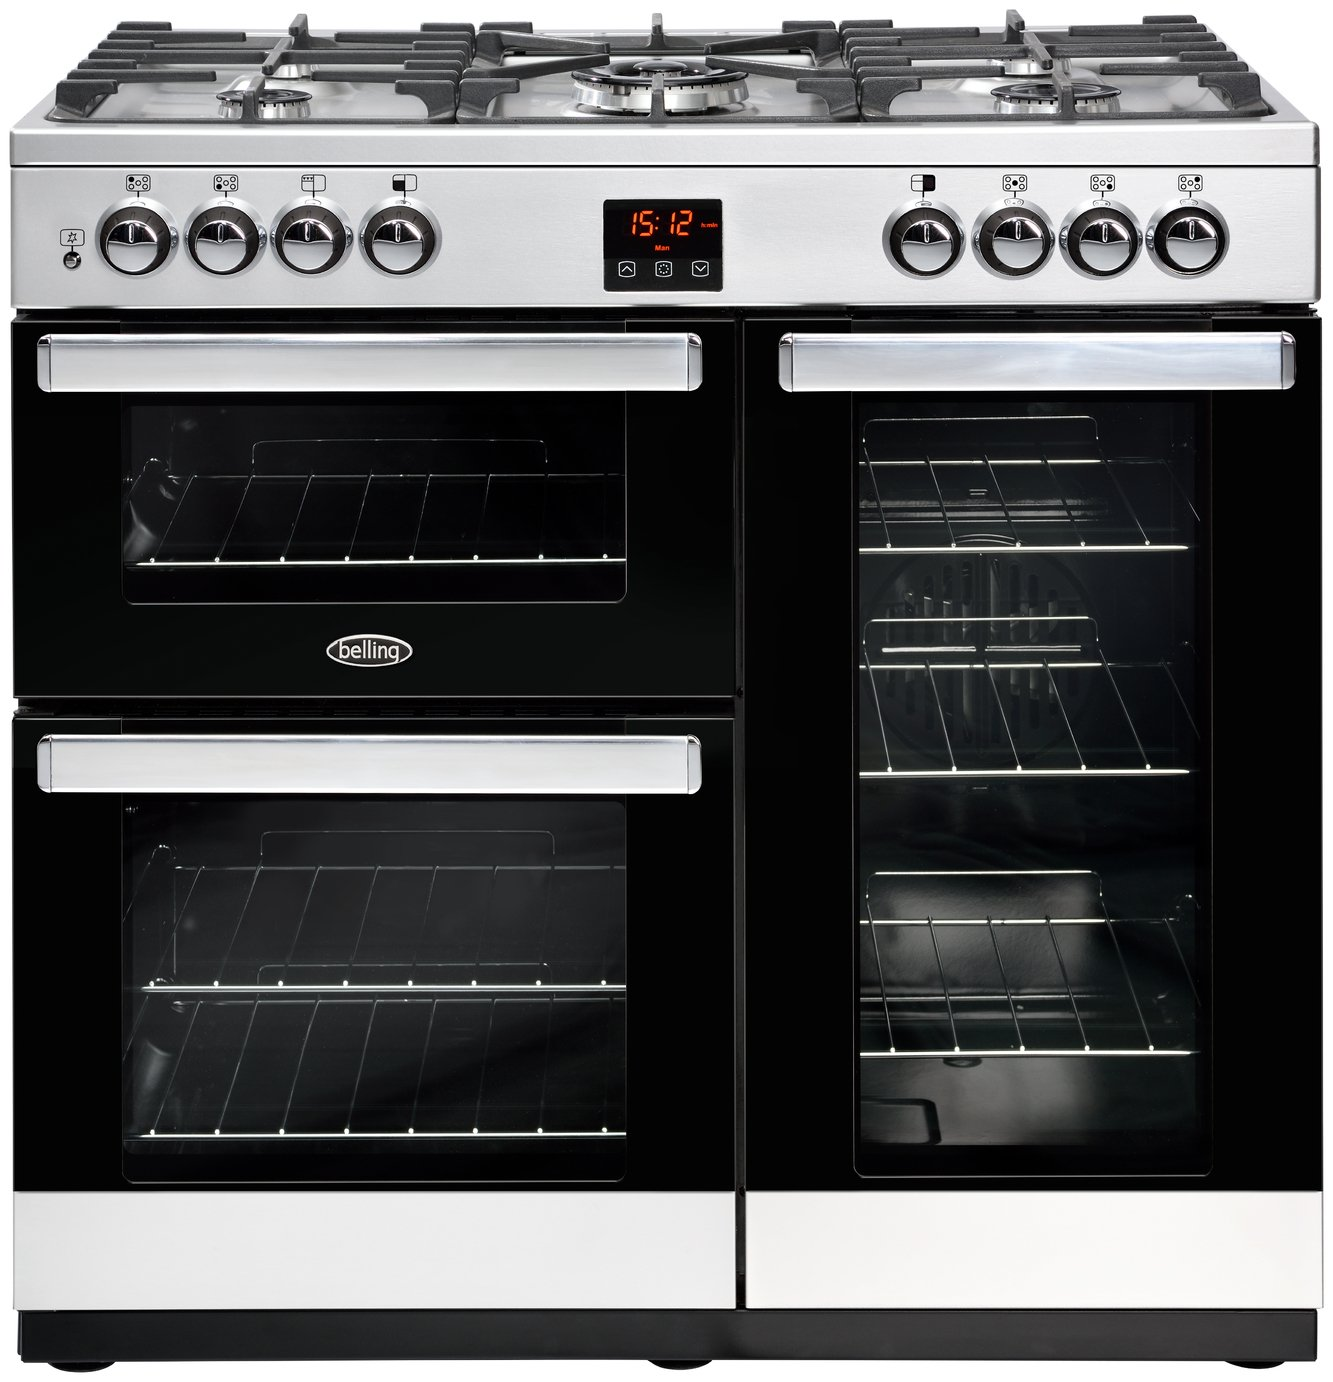 Belling Cookcentre 90G Gas Range Cooker - Stainless Steel